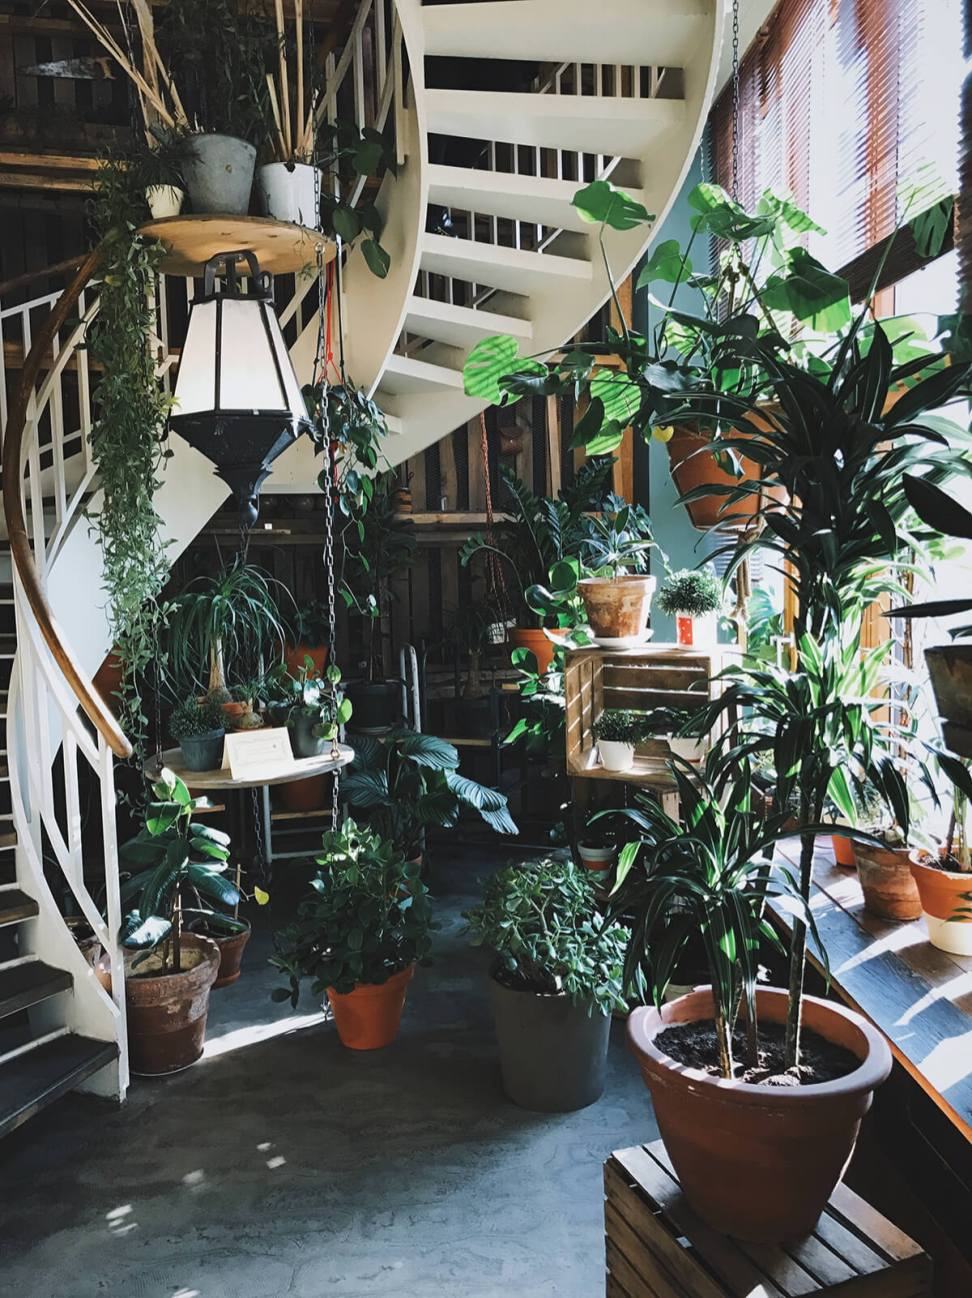 Indoor garden in Berlin, Germany